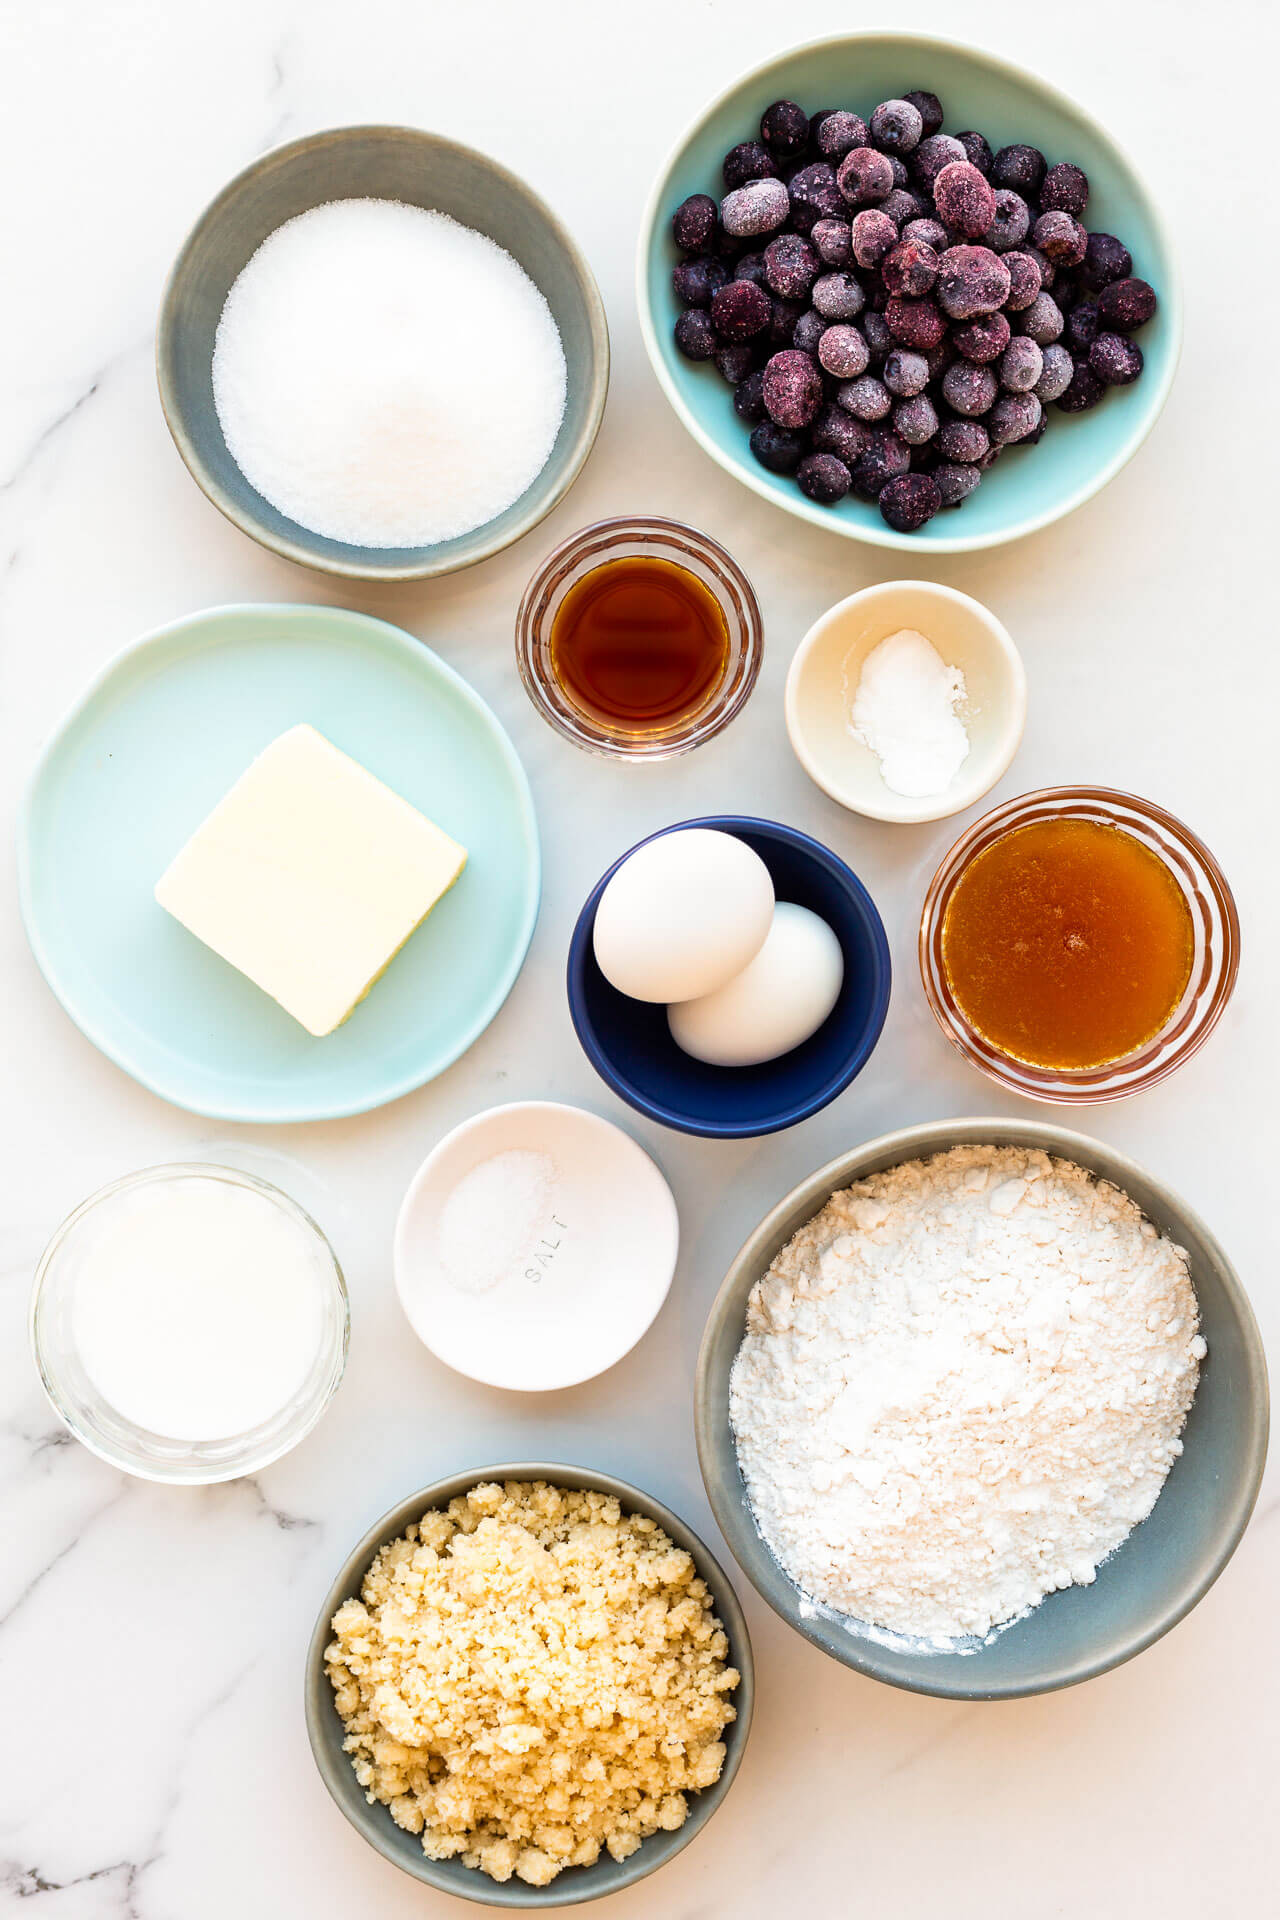 Ingredients laid out for baking blueberry muffins: sugar, frozen blueberries, vanilla, salt, honey eggs, butter, baking powder and soda, flour, and crumble topping